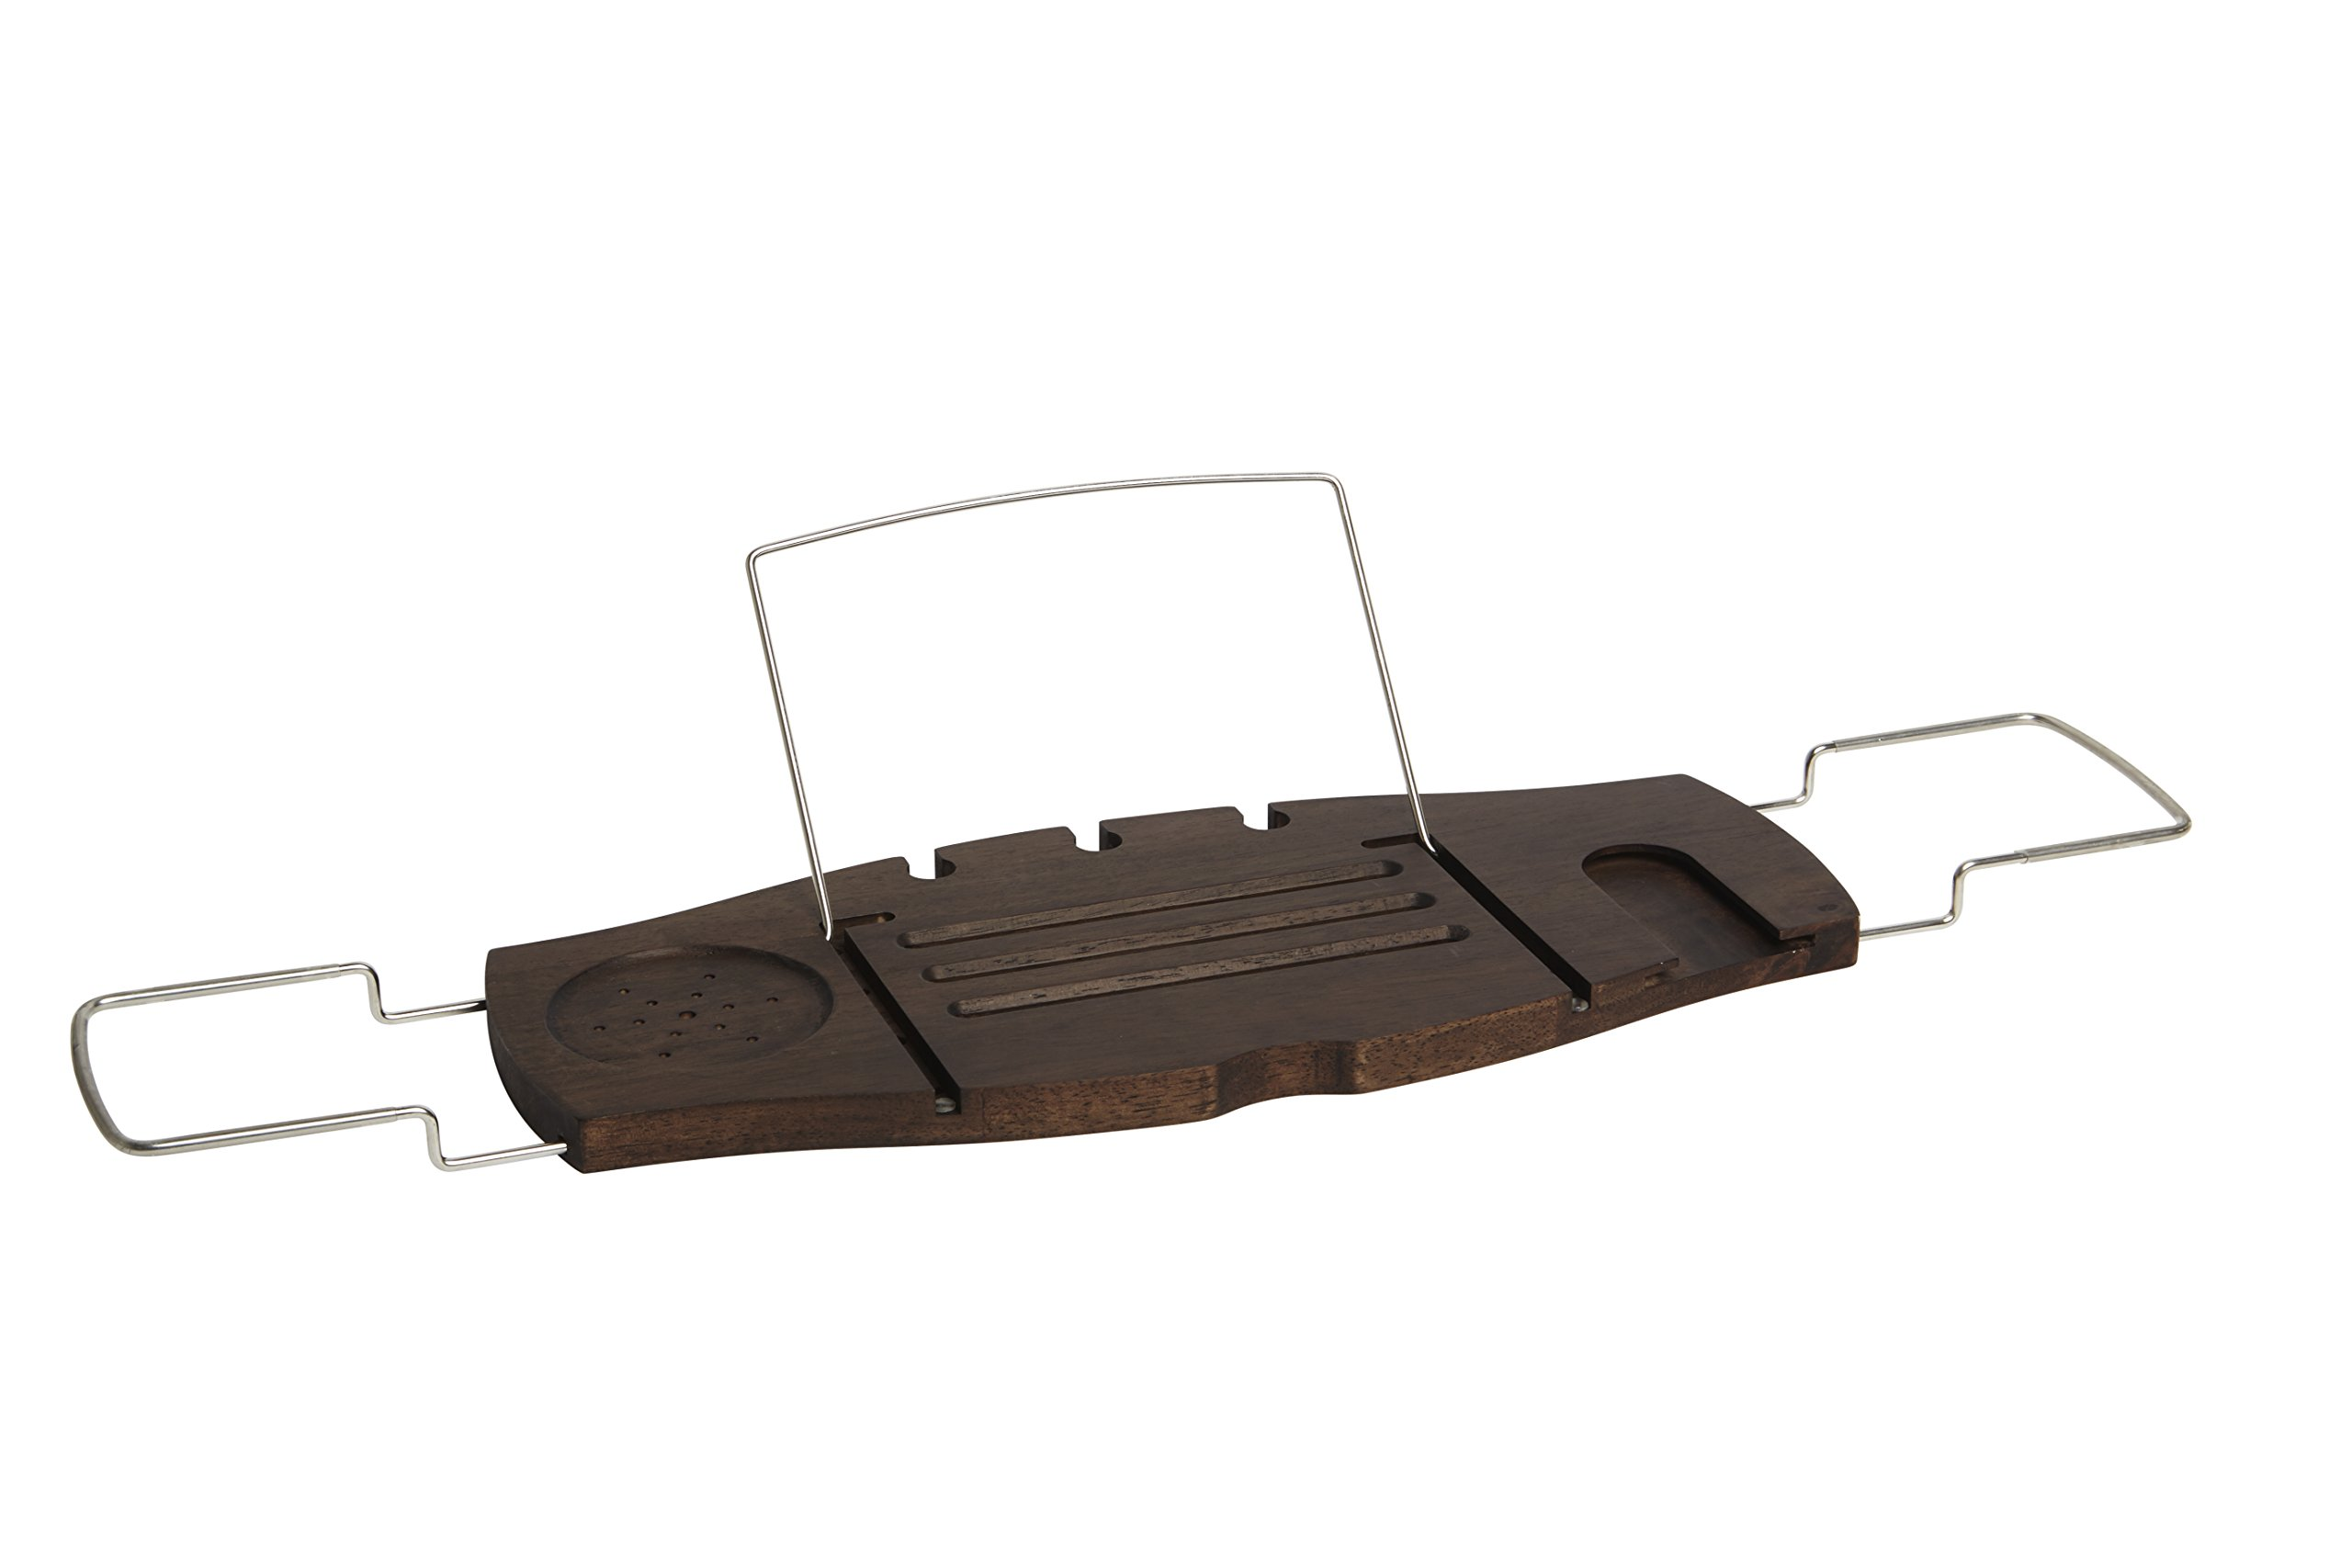 Umbra Aquala Bathtub Caddy Bamboo Extendable and Adjustable Tray Holder, Walnut Finish